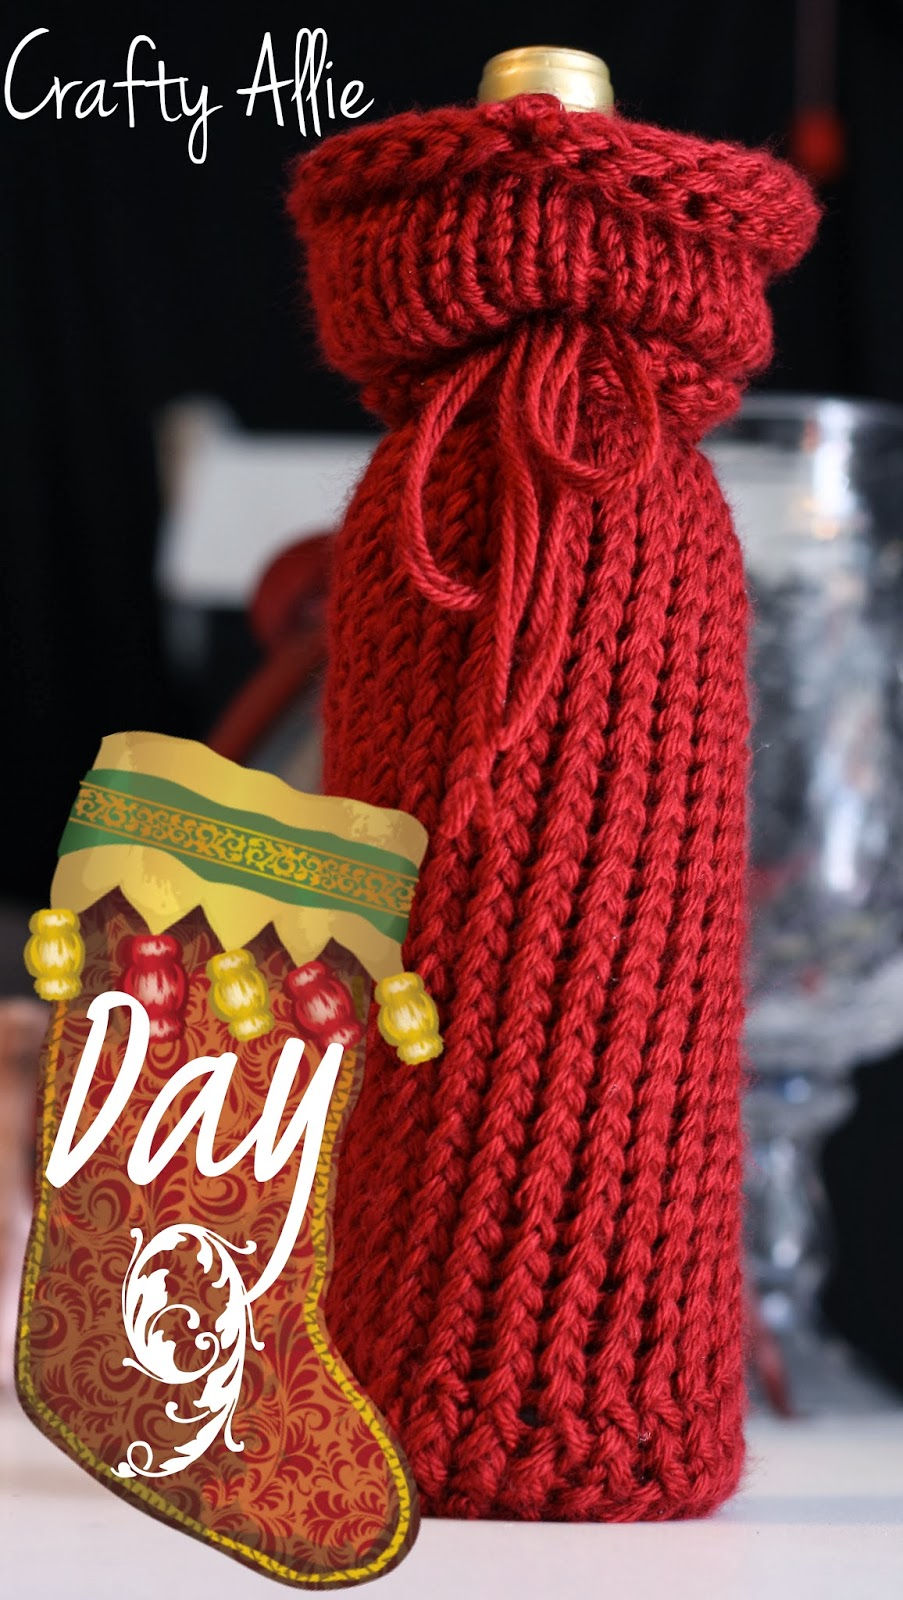 12 Days of Christmas, Day 9: Knitted Wine Bottle Cover